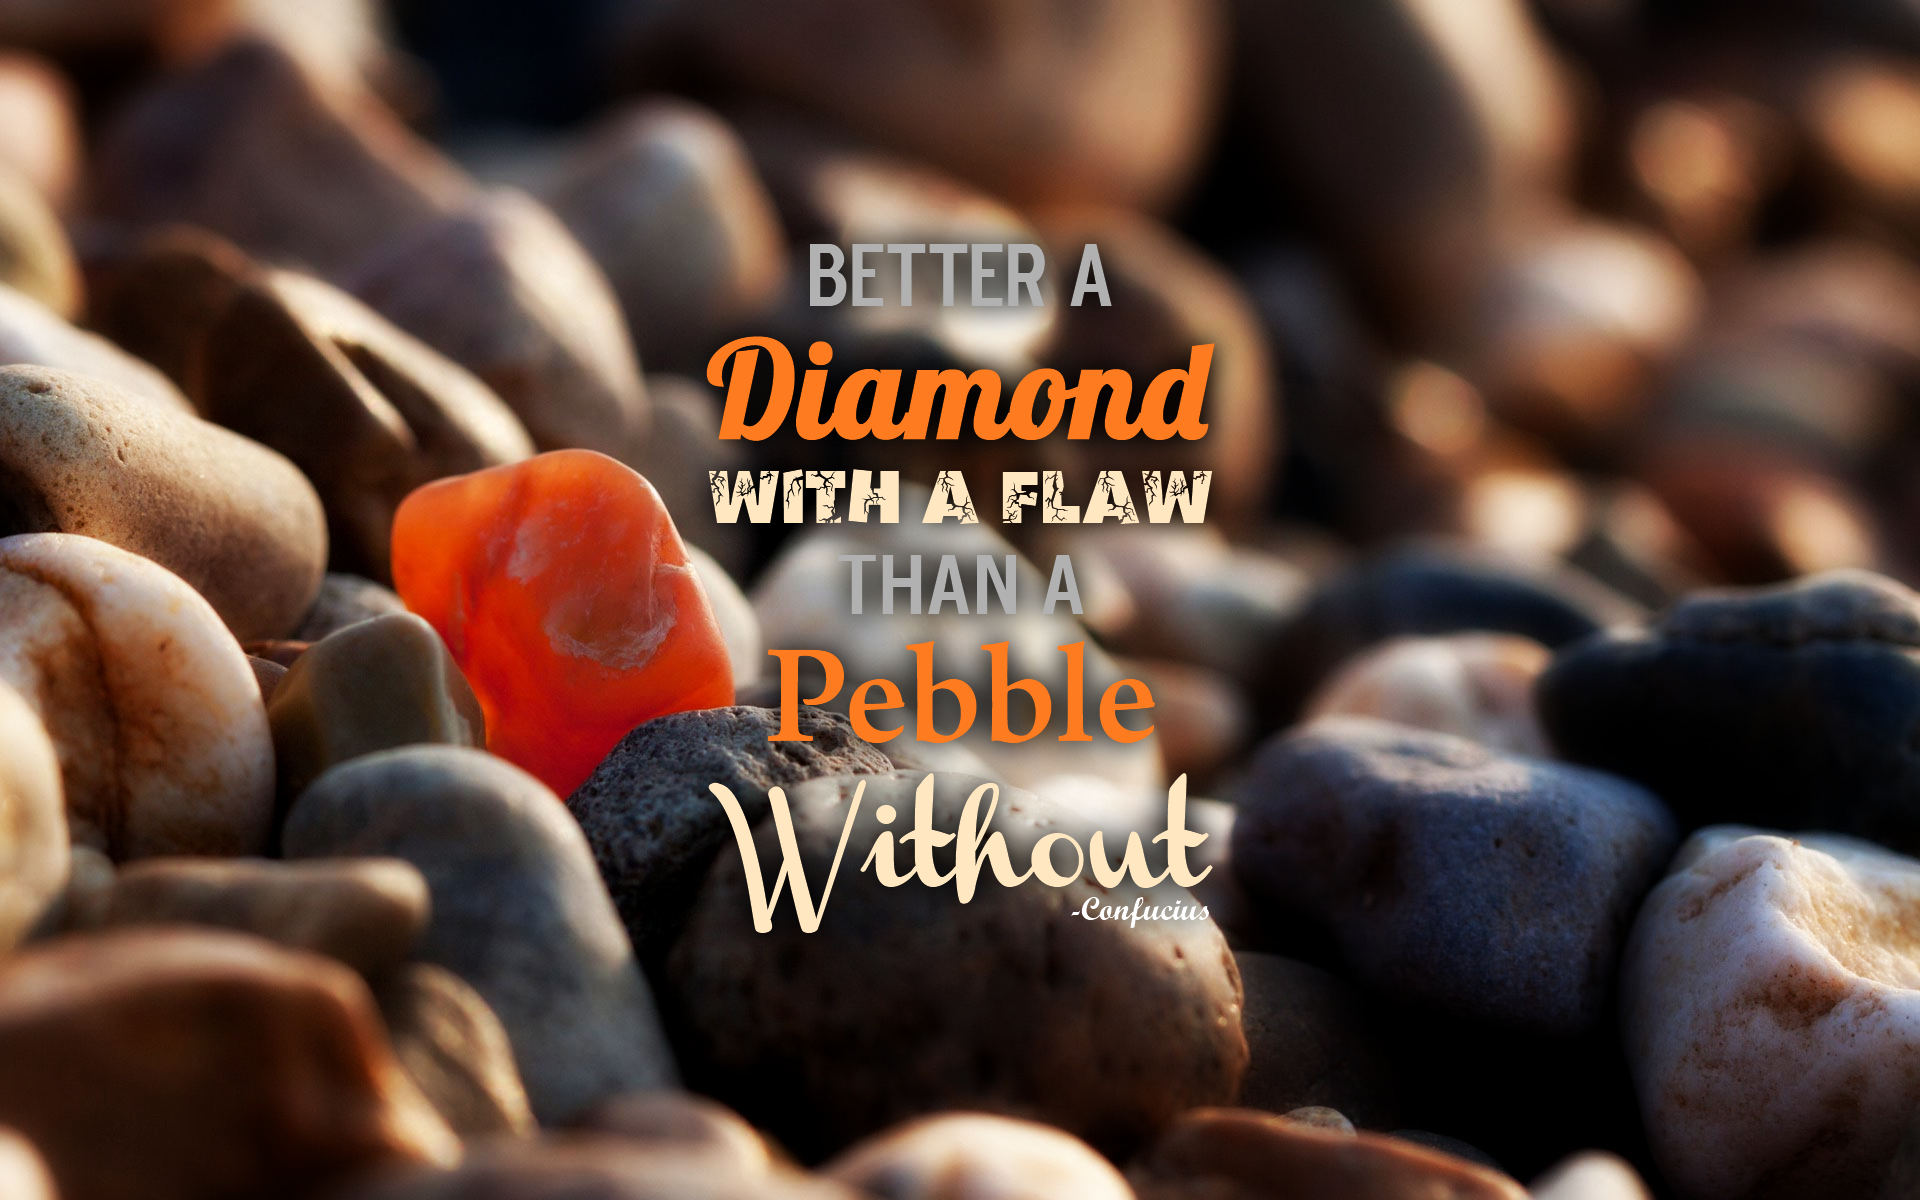 confucius quote about diamond